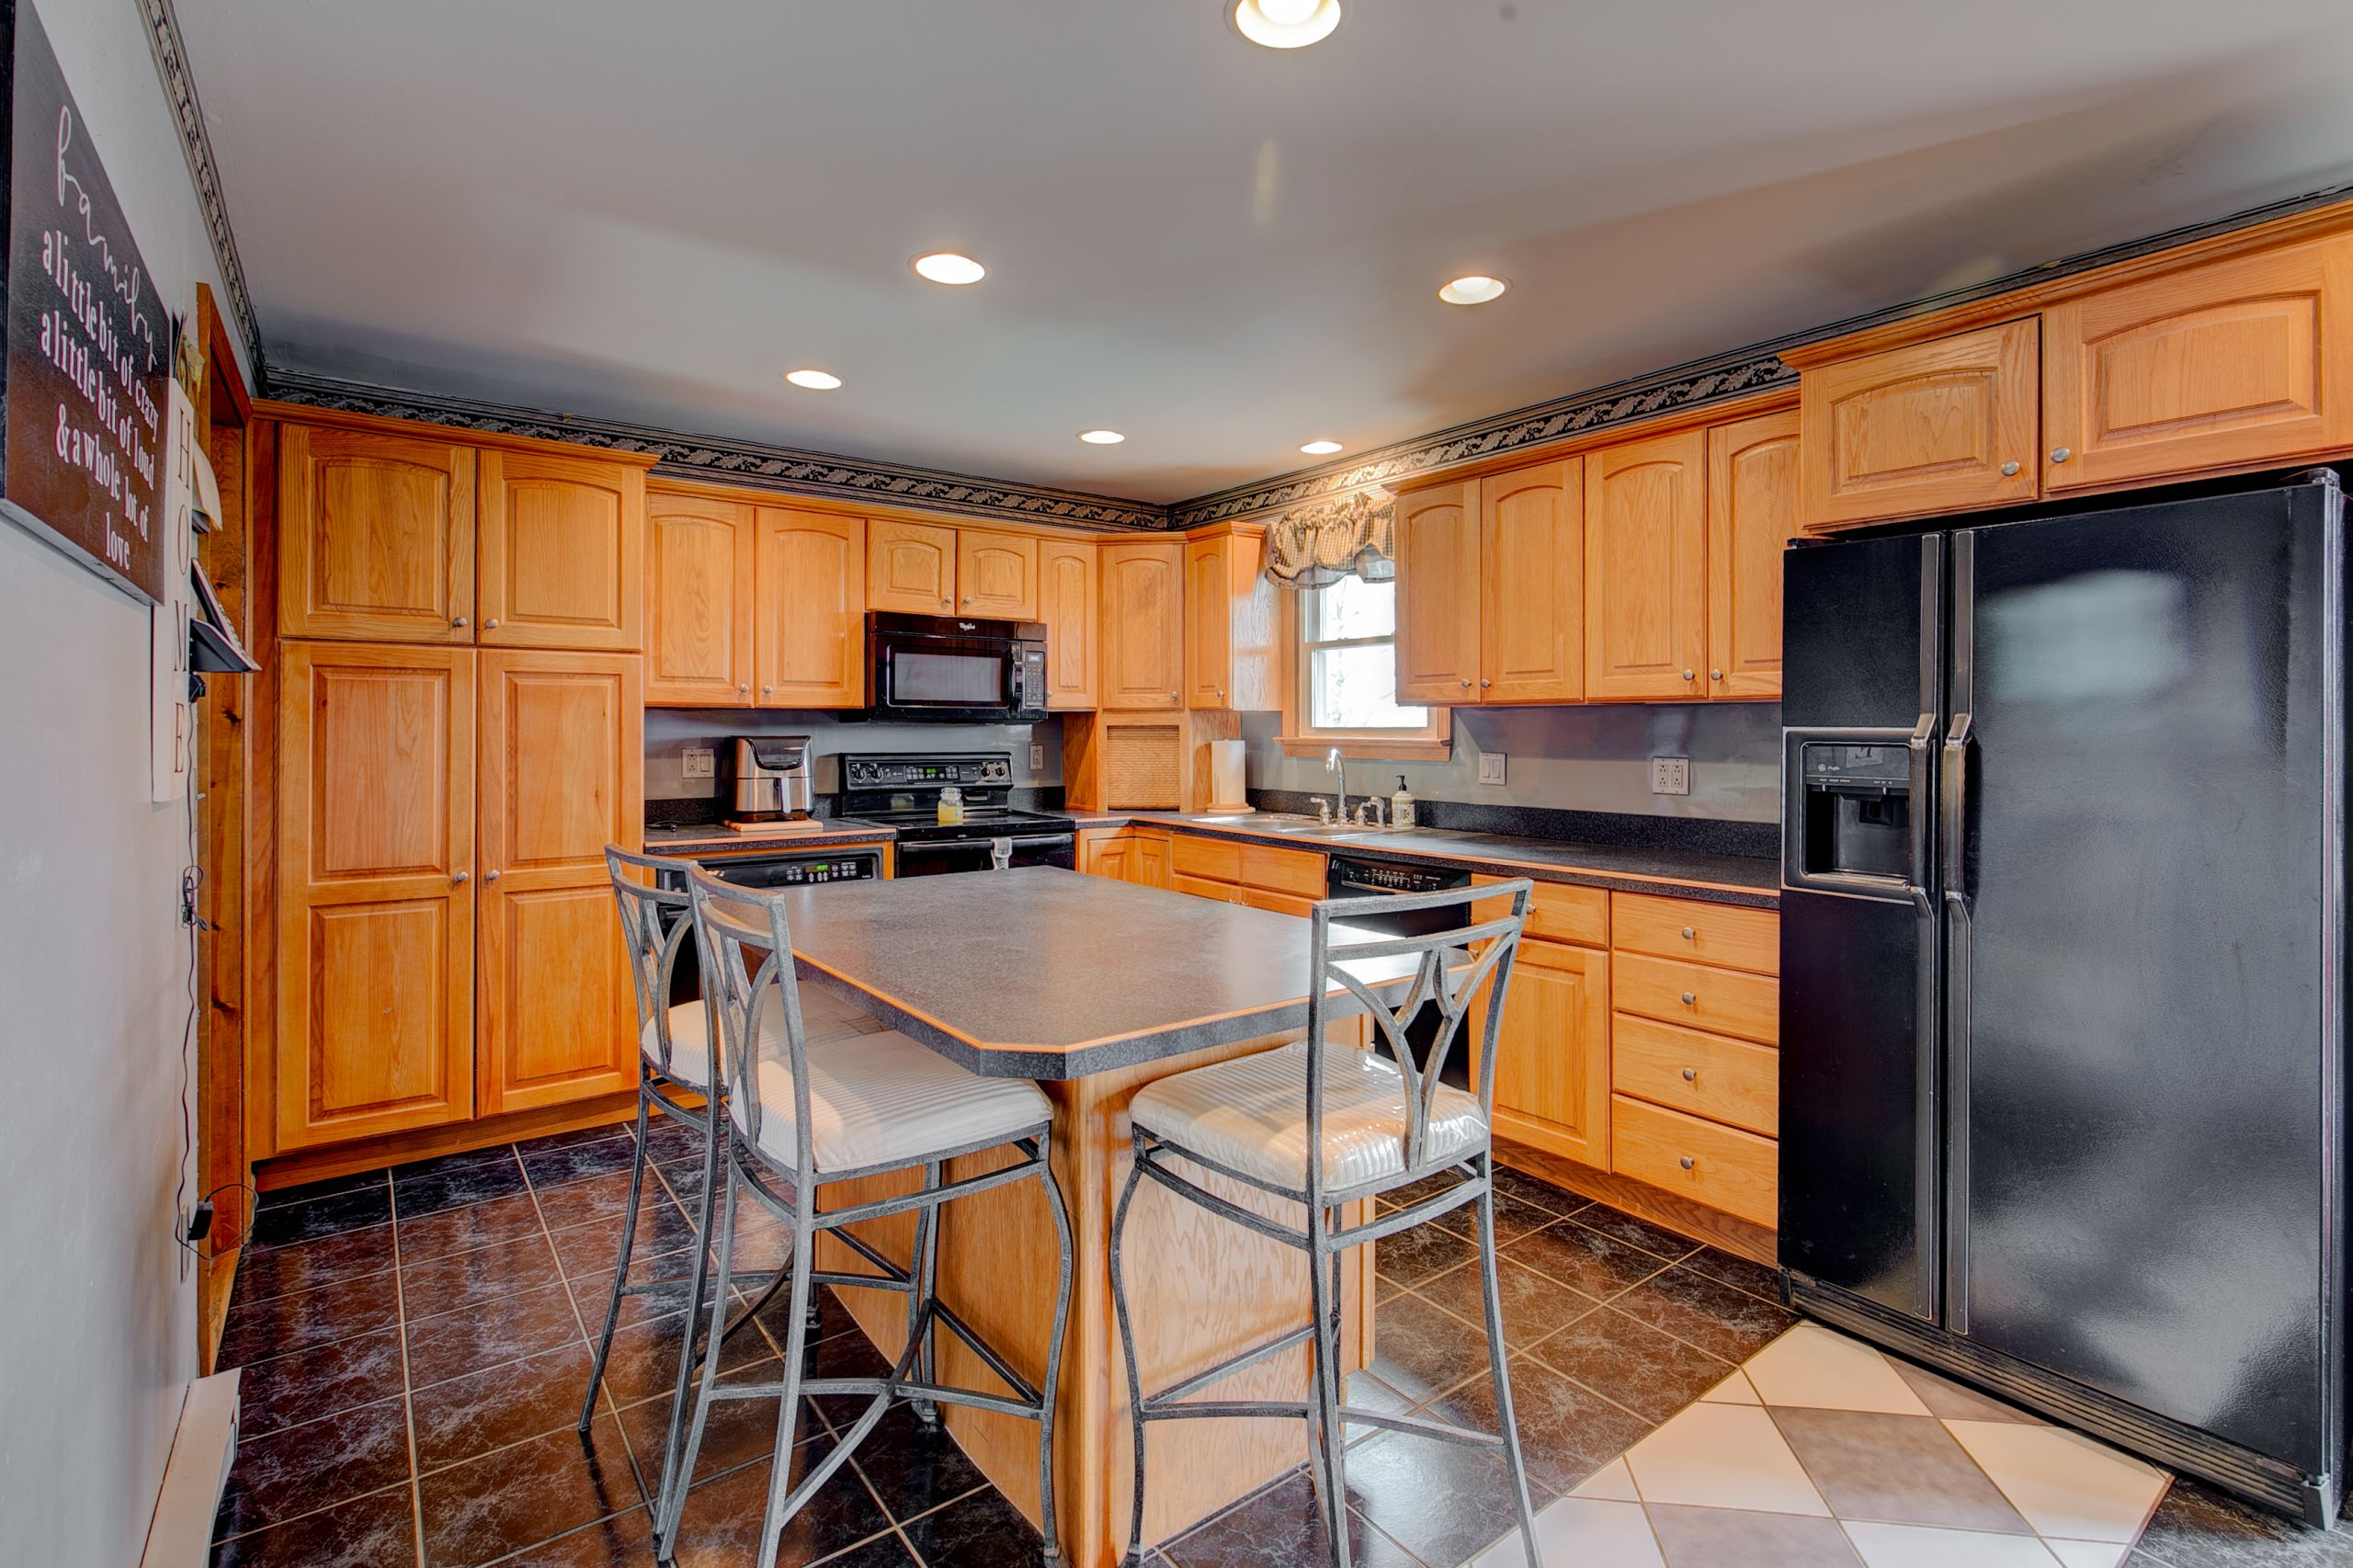 Open layout kitchen with island and barstools